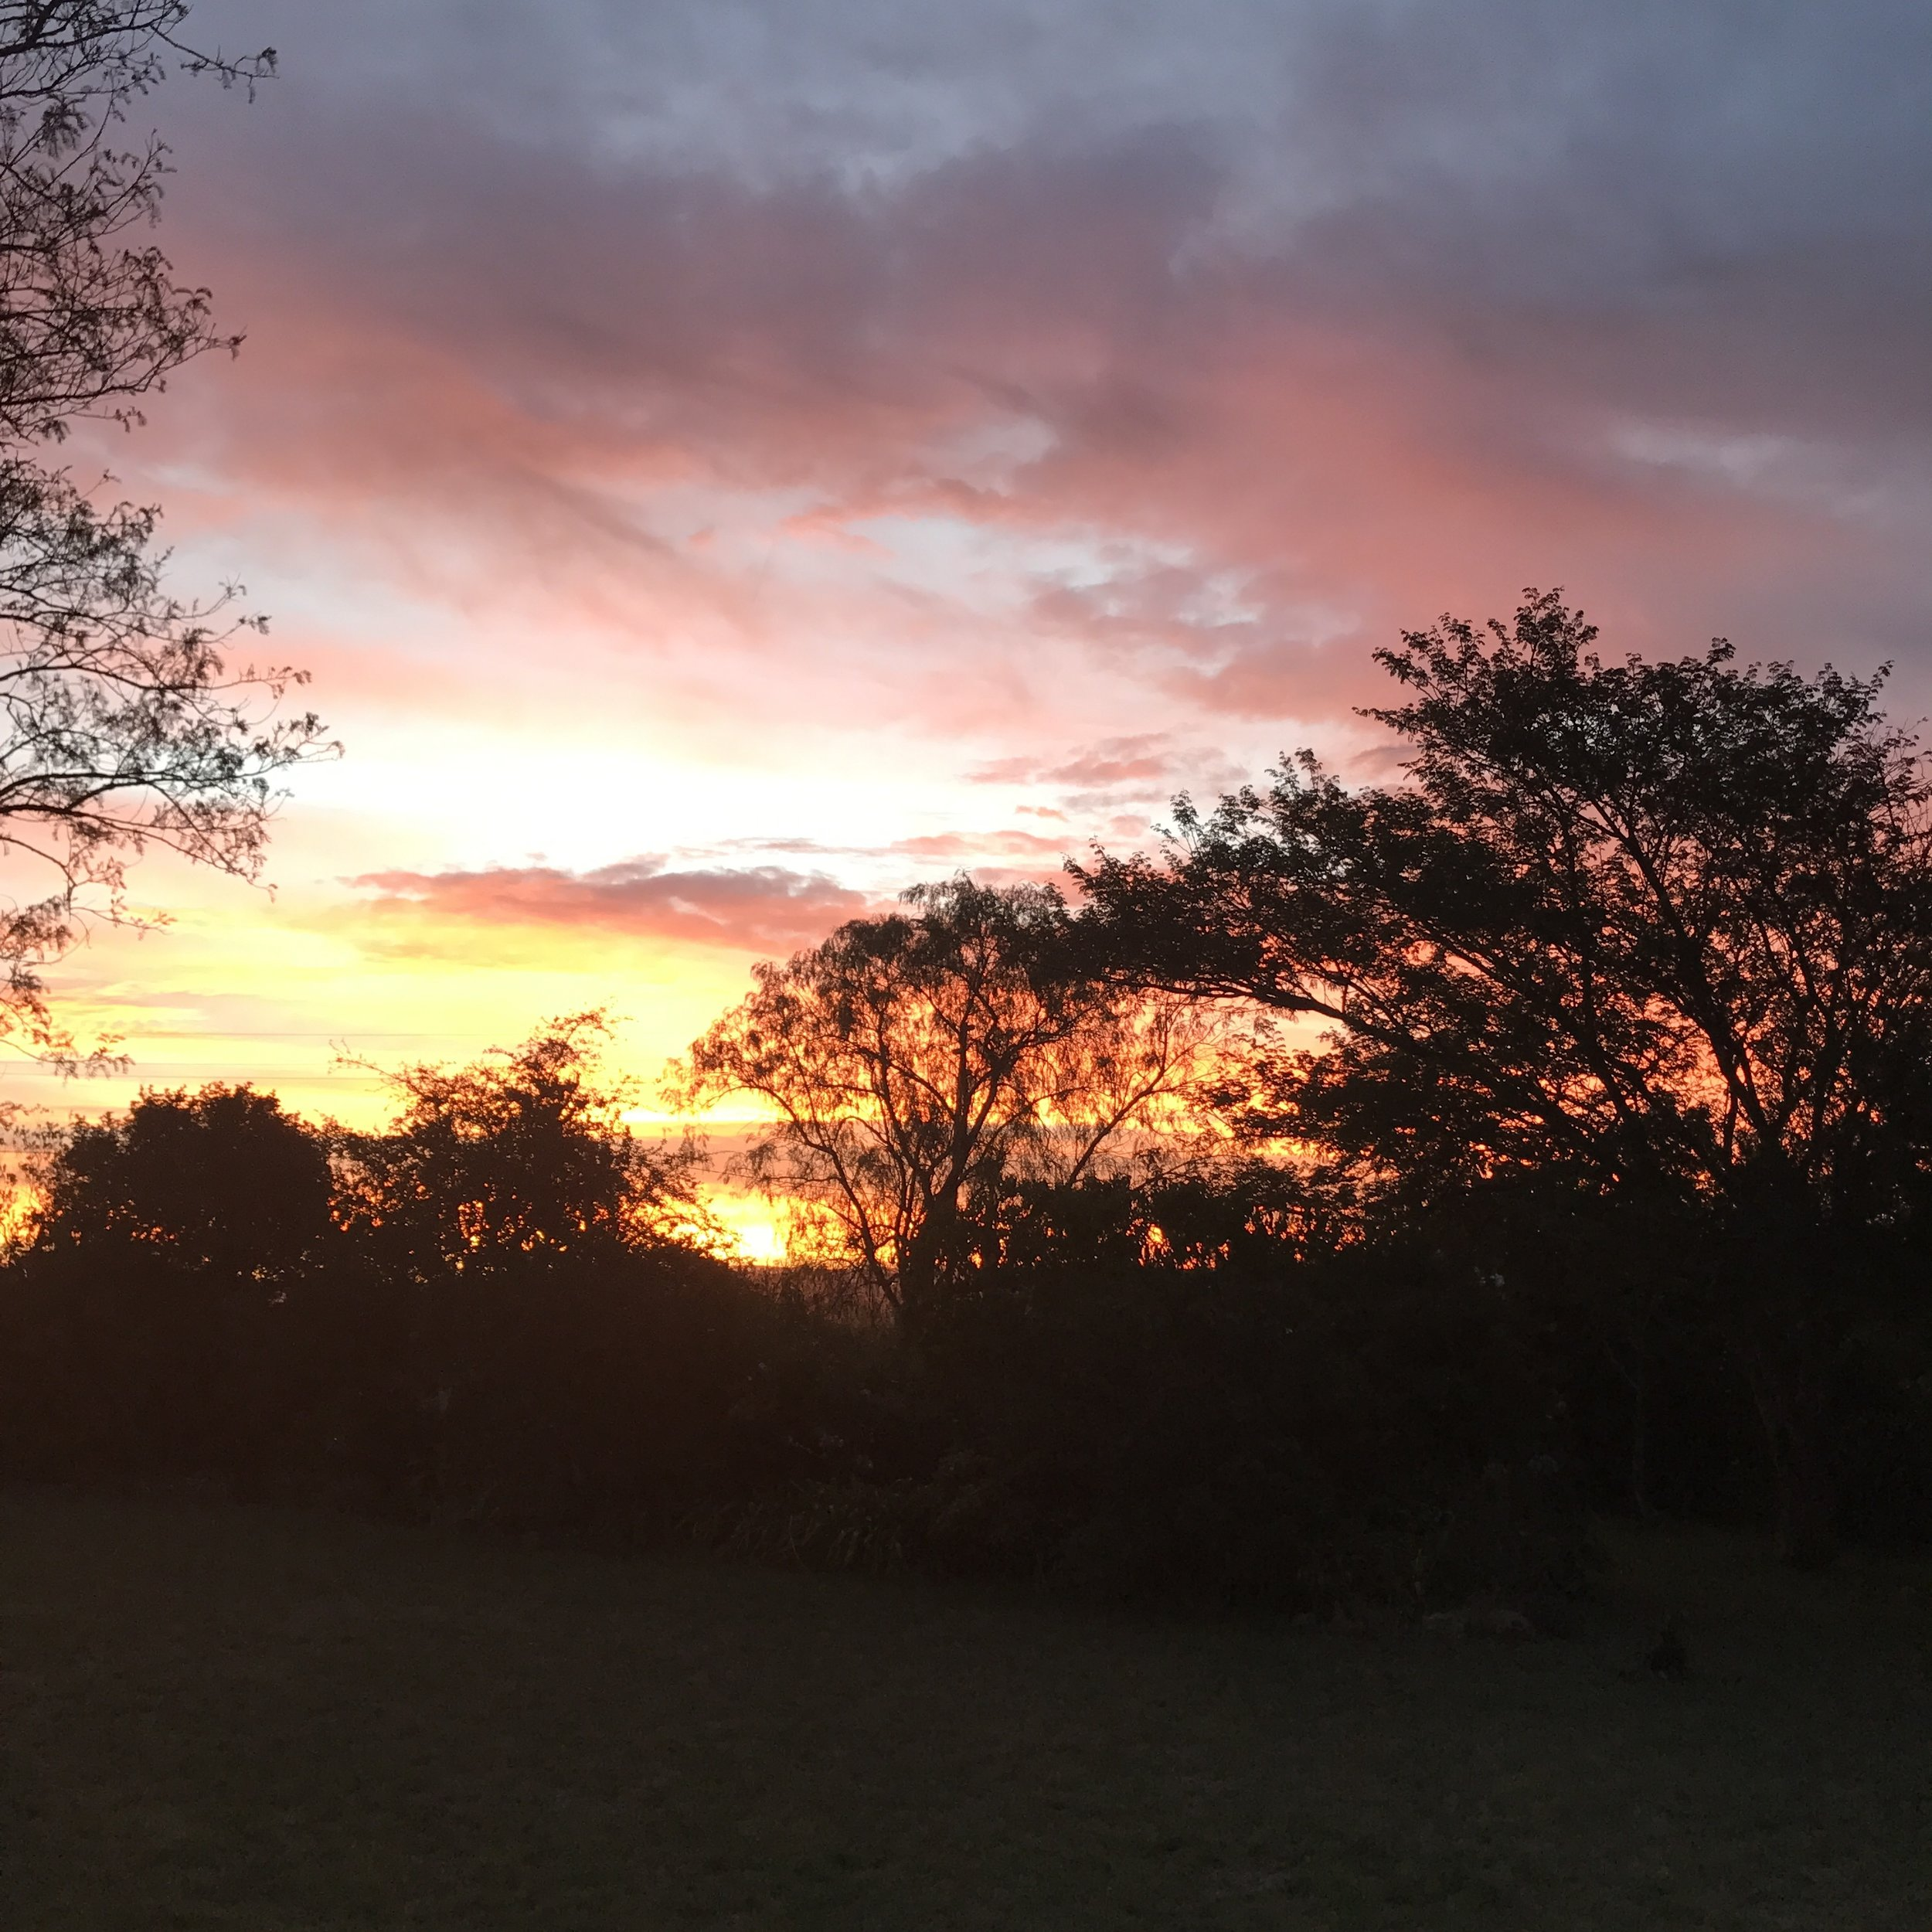 Sunset in Ashburton, South Africa